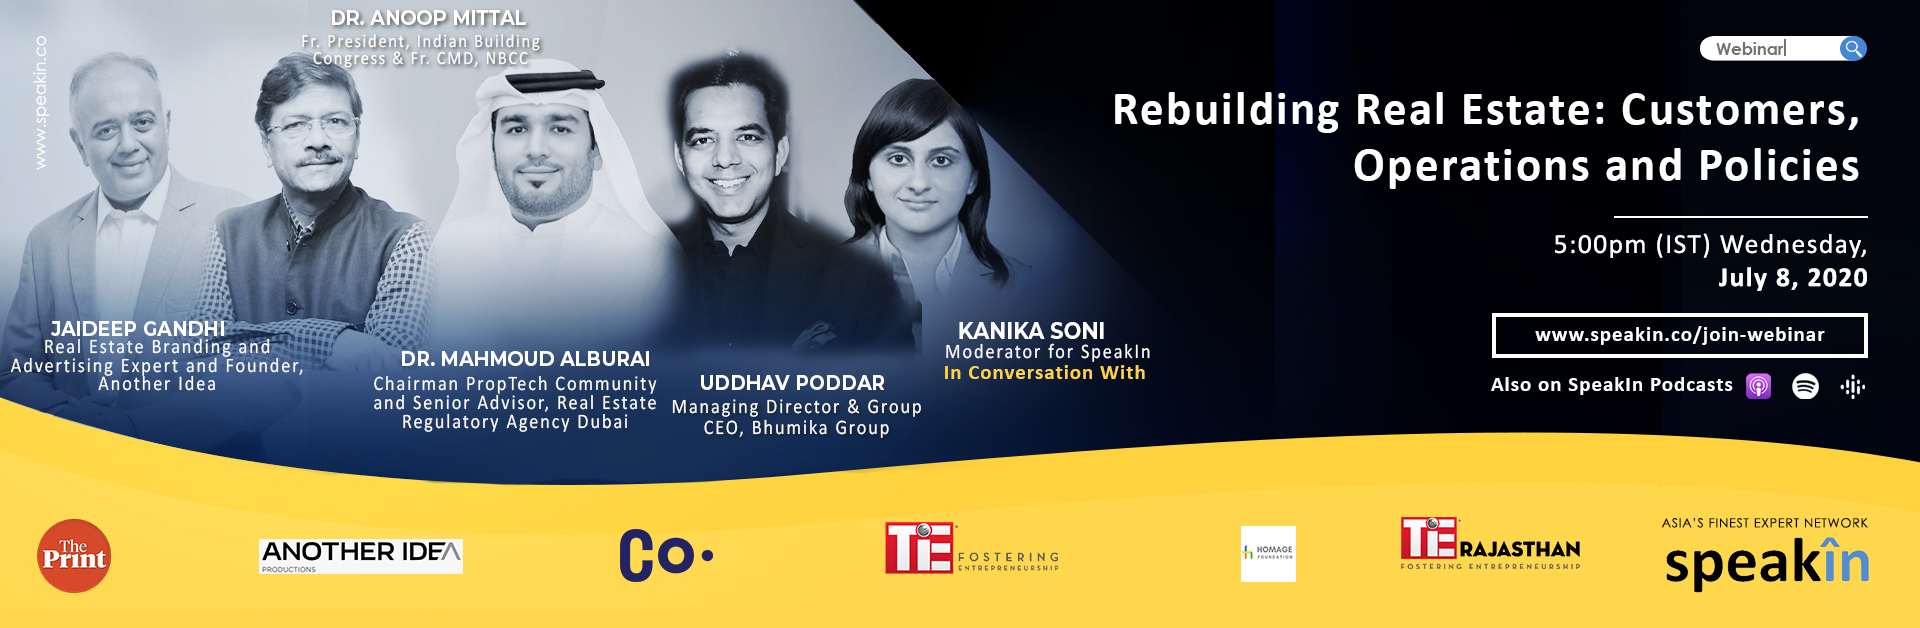 Rebuilding Real Estate: Customers, Operations and Policies